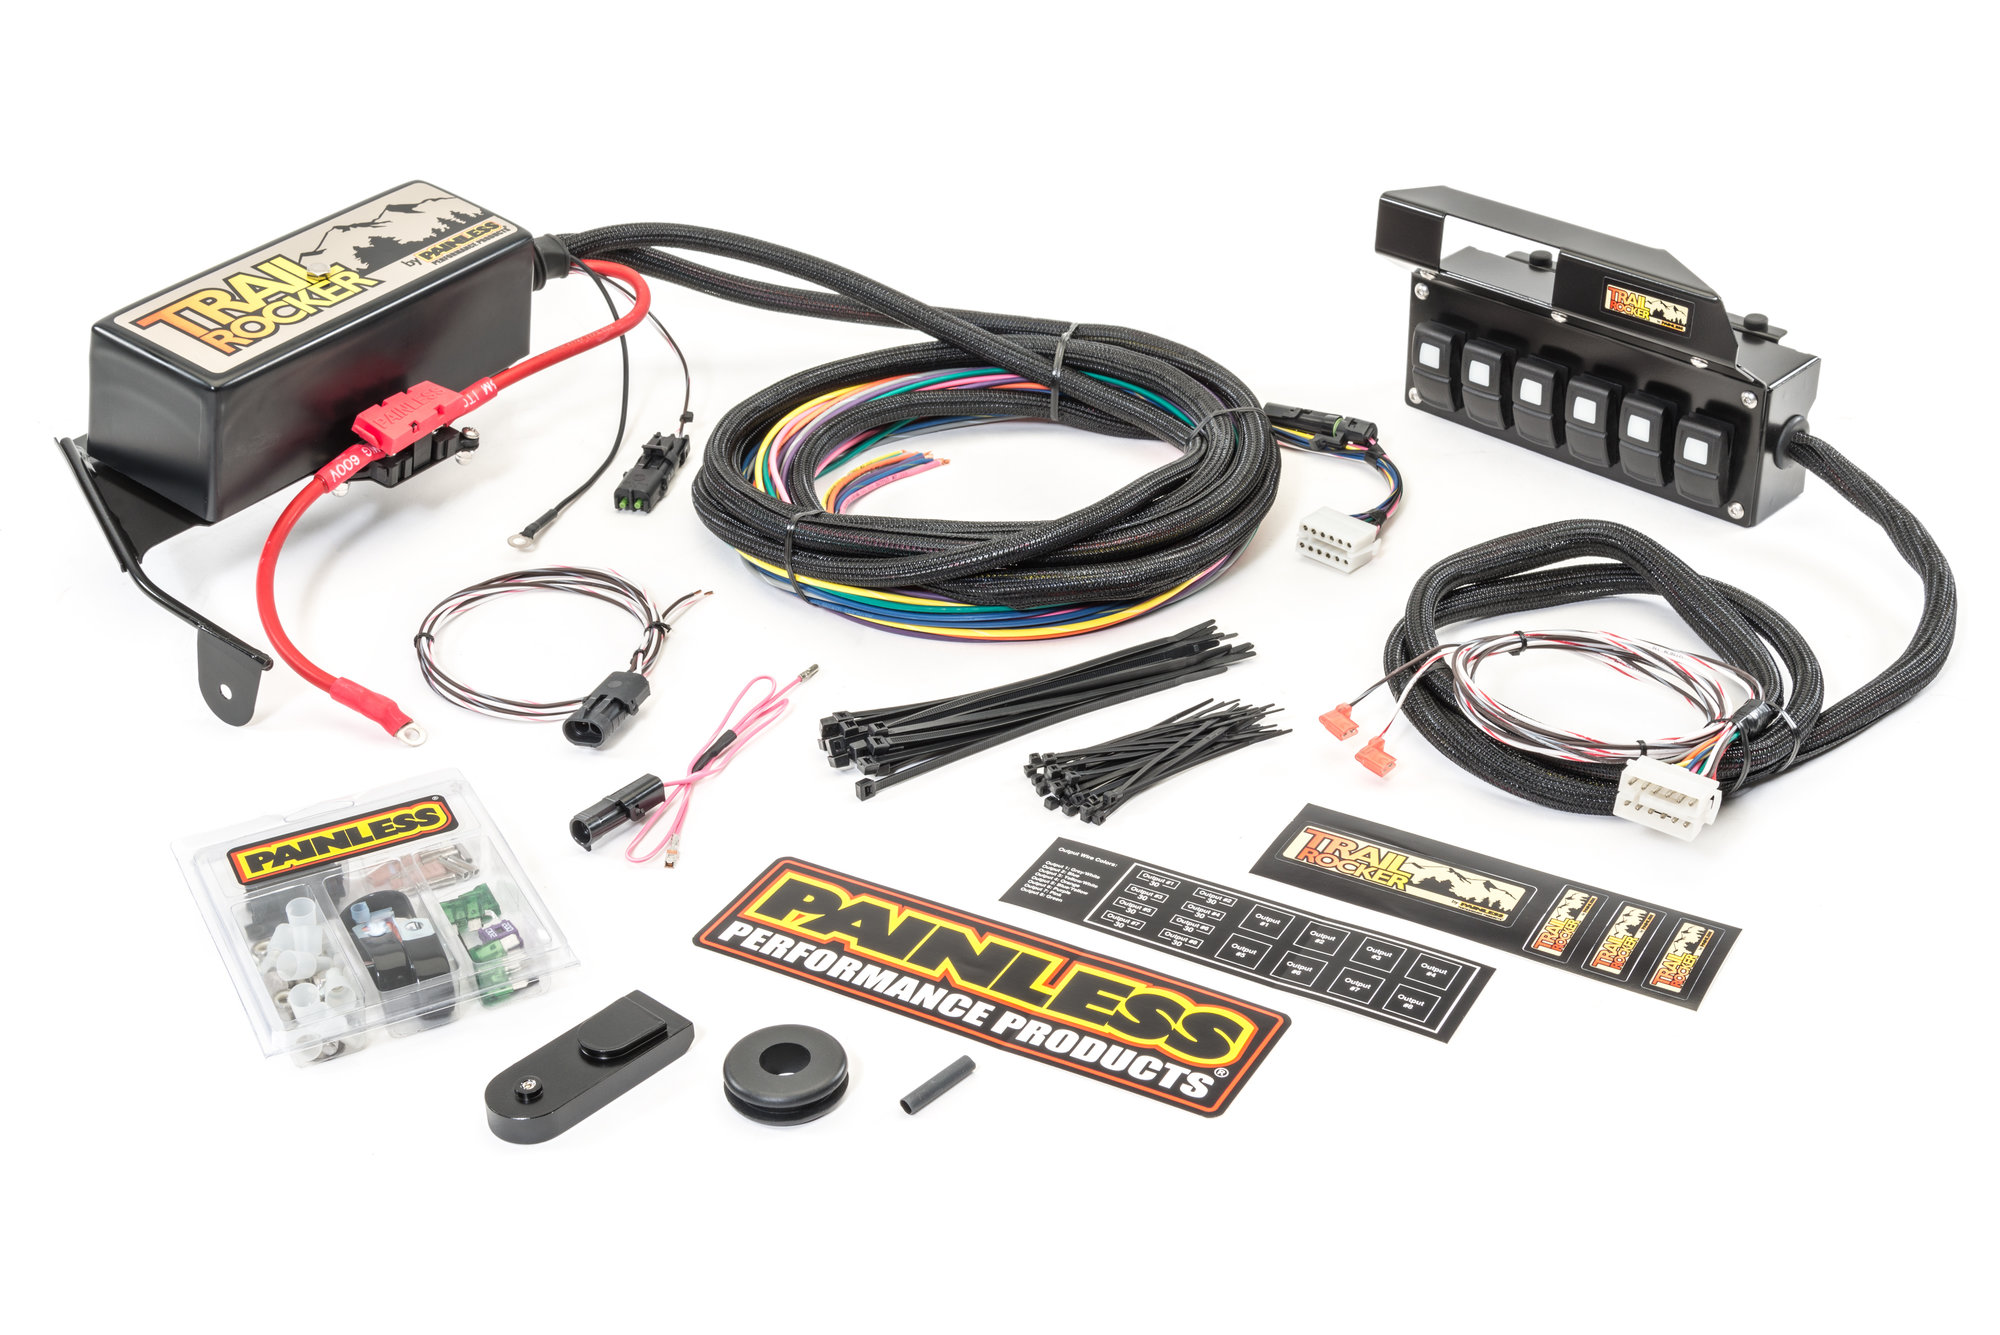 hight resolution of painless wiring trail rocker relay center accessory control for 09 18 jeep wrangler jk